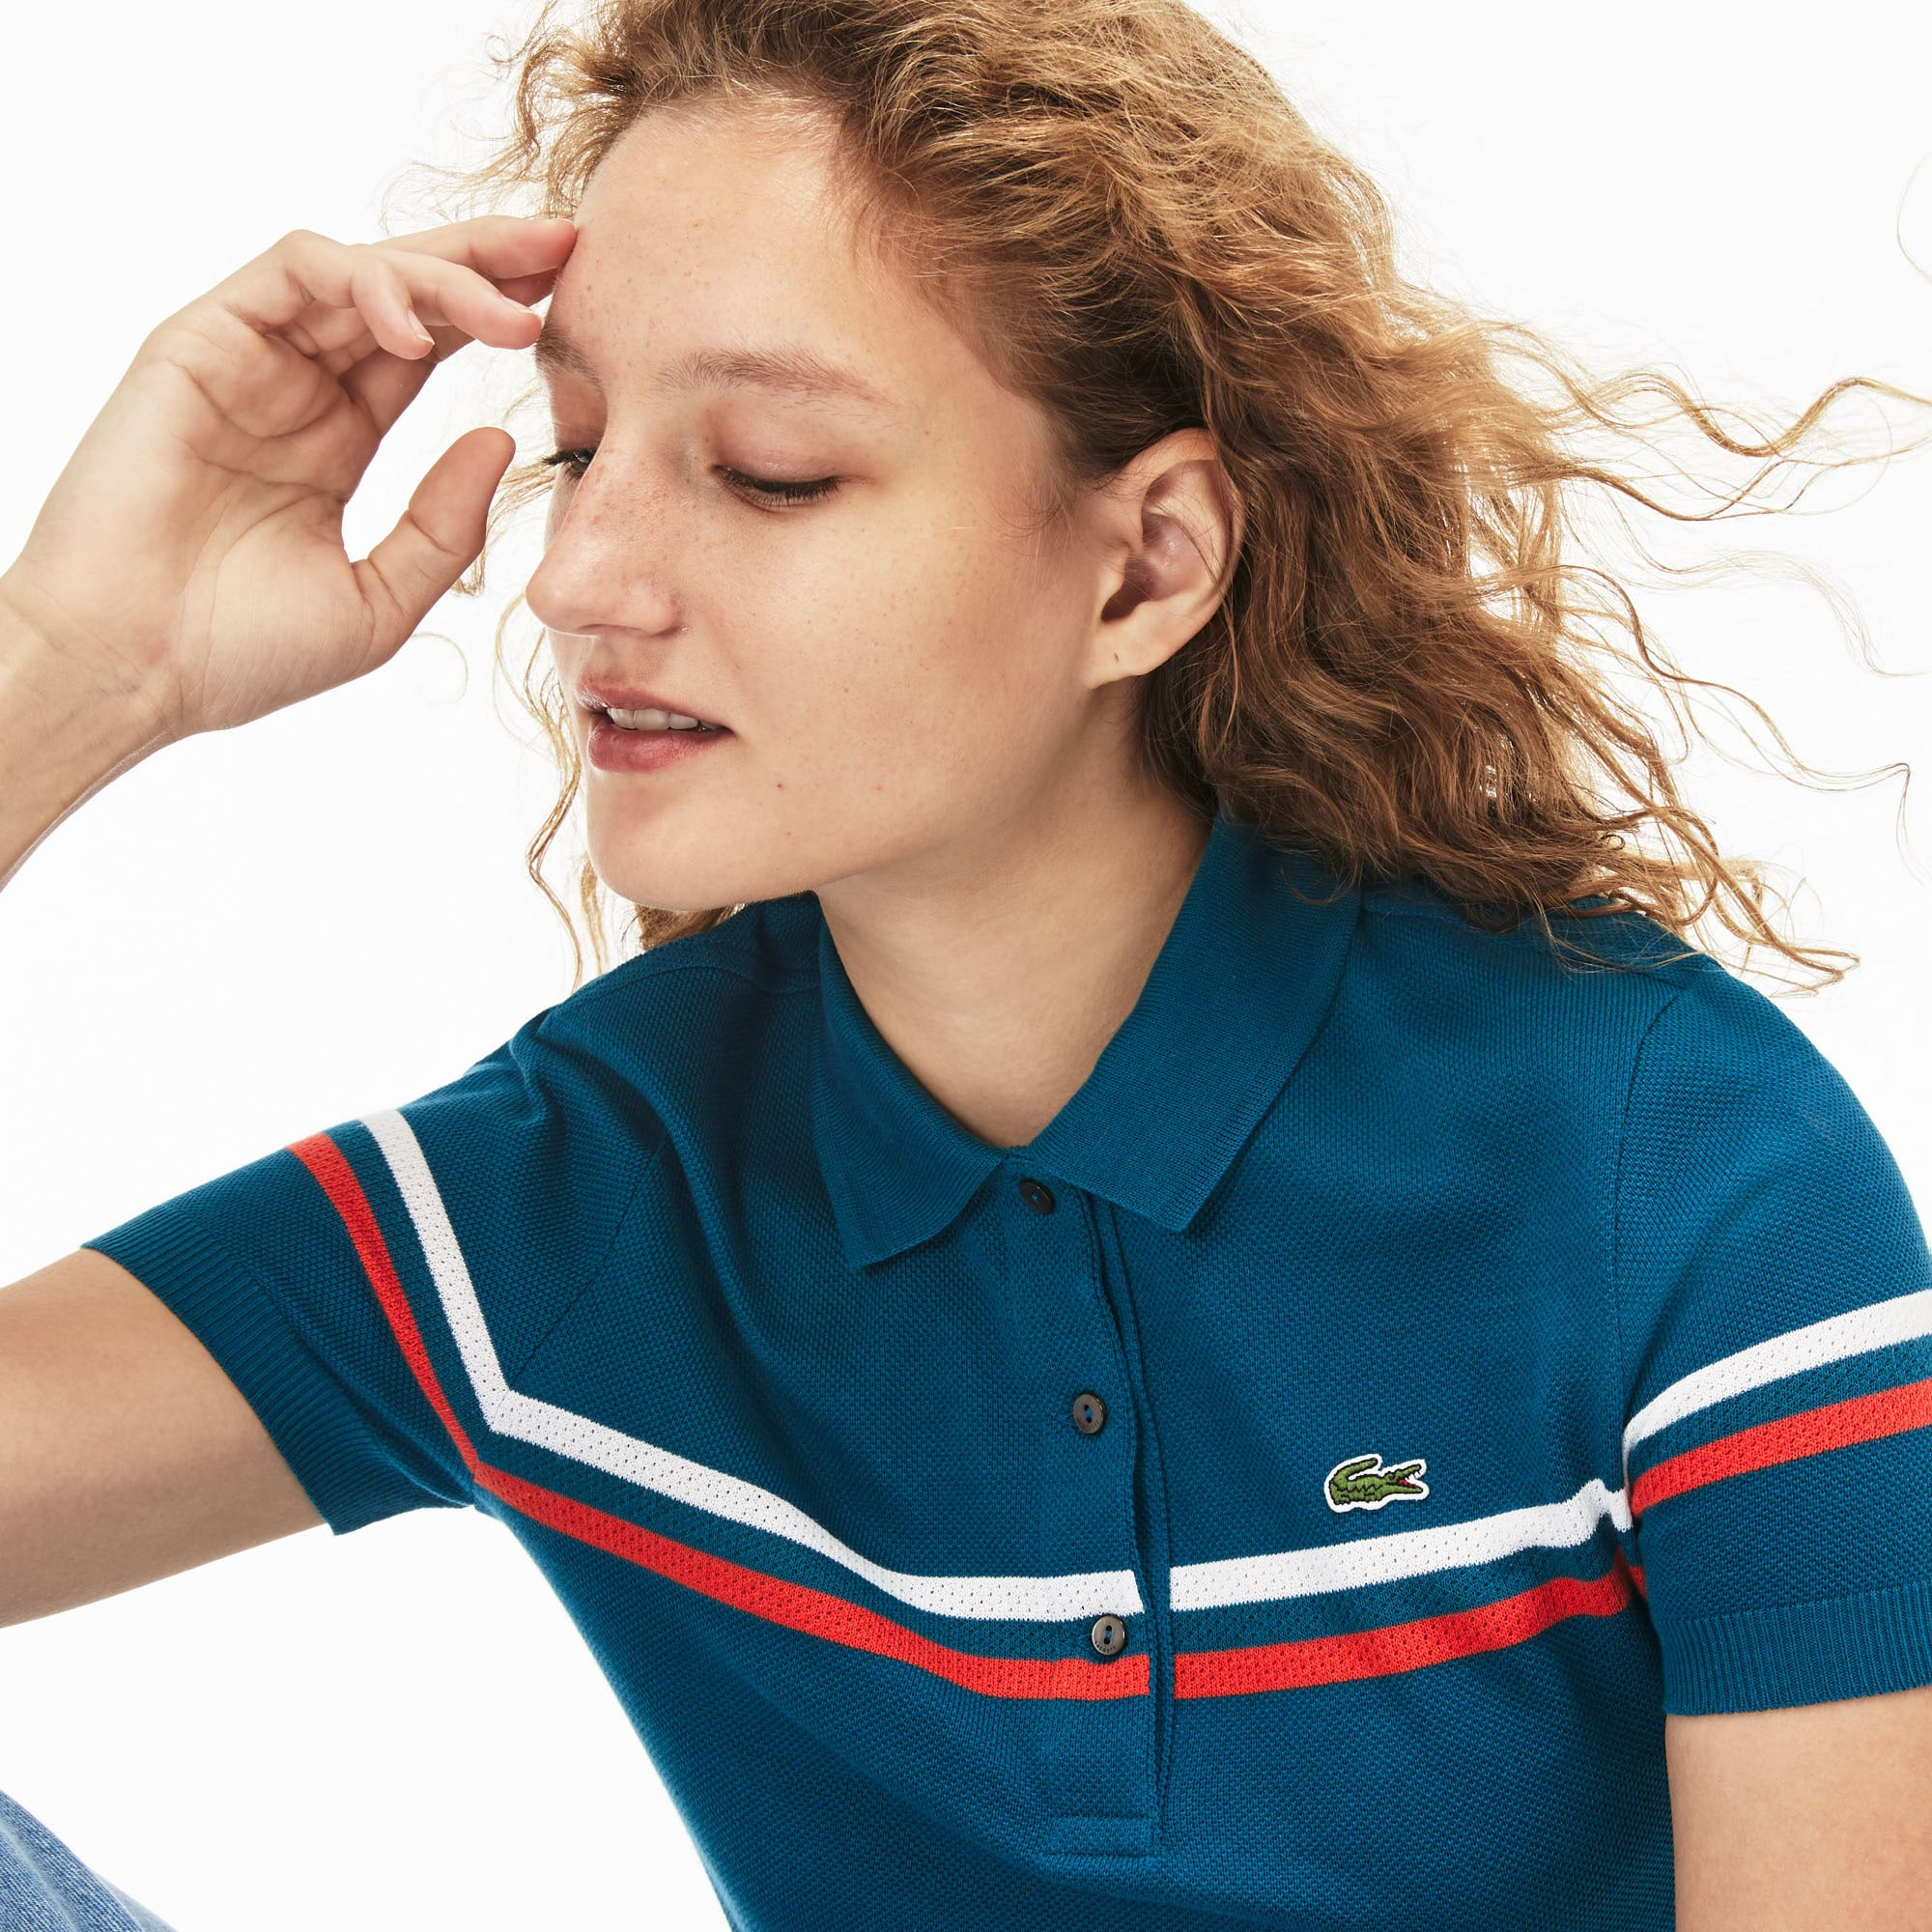 Women's Lacoste Slim Fit MADE IN FRANCE Tricolour Striped Cotton Polo Shirt